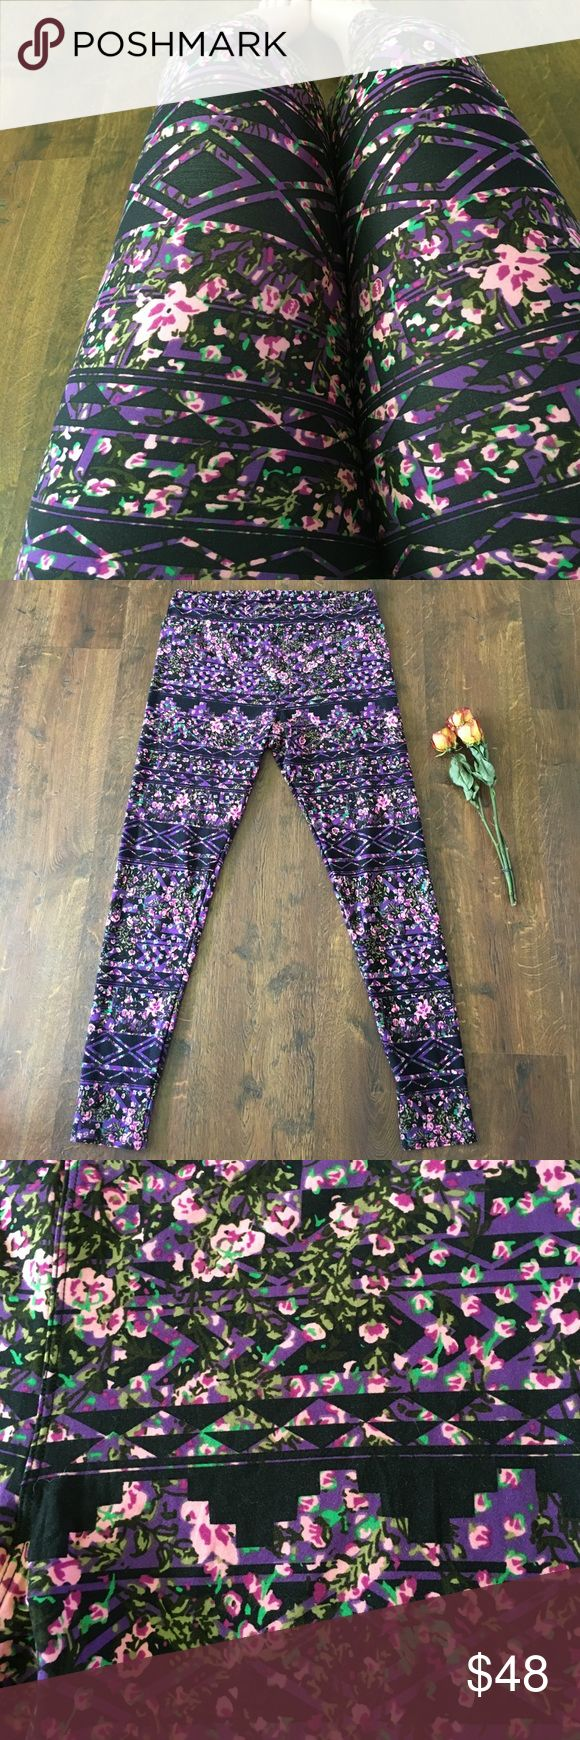 New LLR TC Purple Floral Leggings Brand new LuLaRoe Tall and Curvy leggings.  These are a cool mix of two patterns intertwined.  One is black and people Aztec and the other is a feminine pink and green floral.  Never washed or worn except for photo.  Made in China. LuLaRoe Pants Leggings